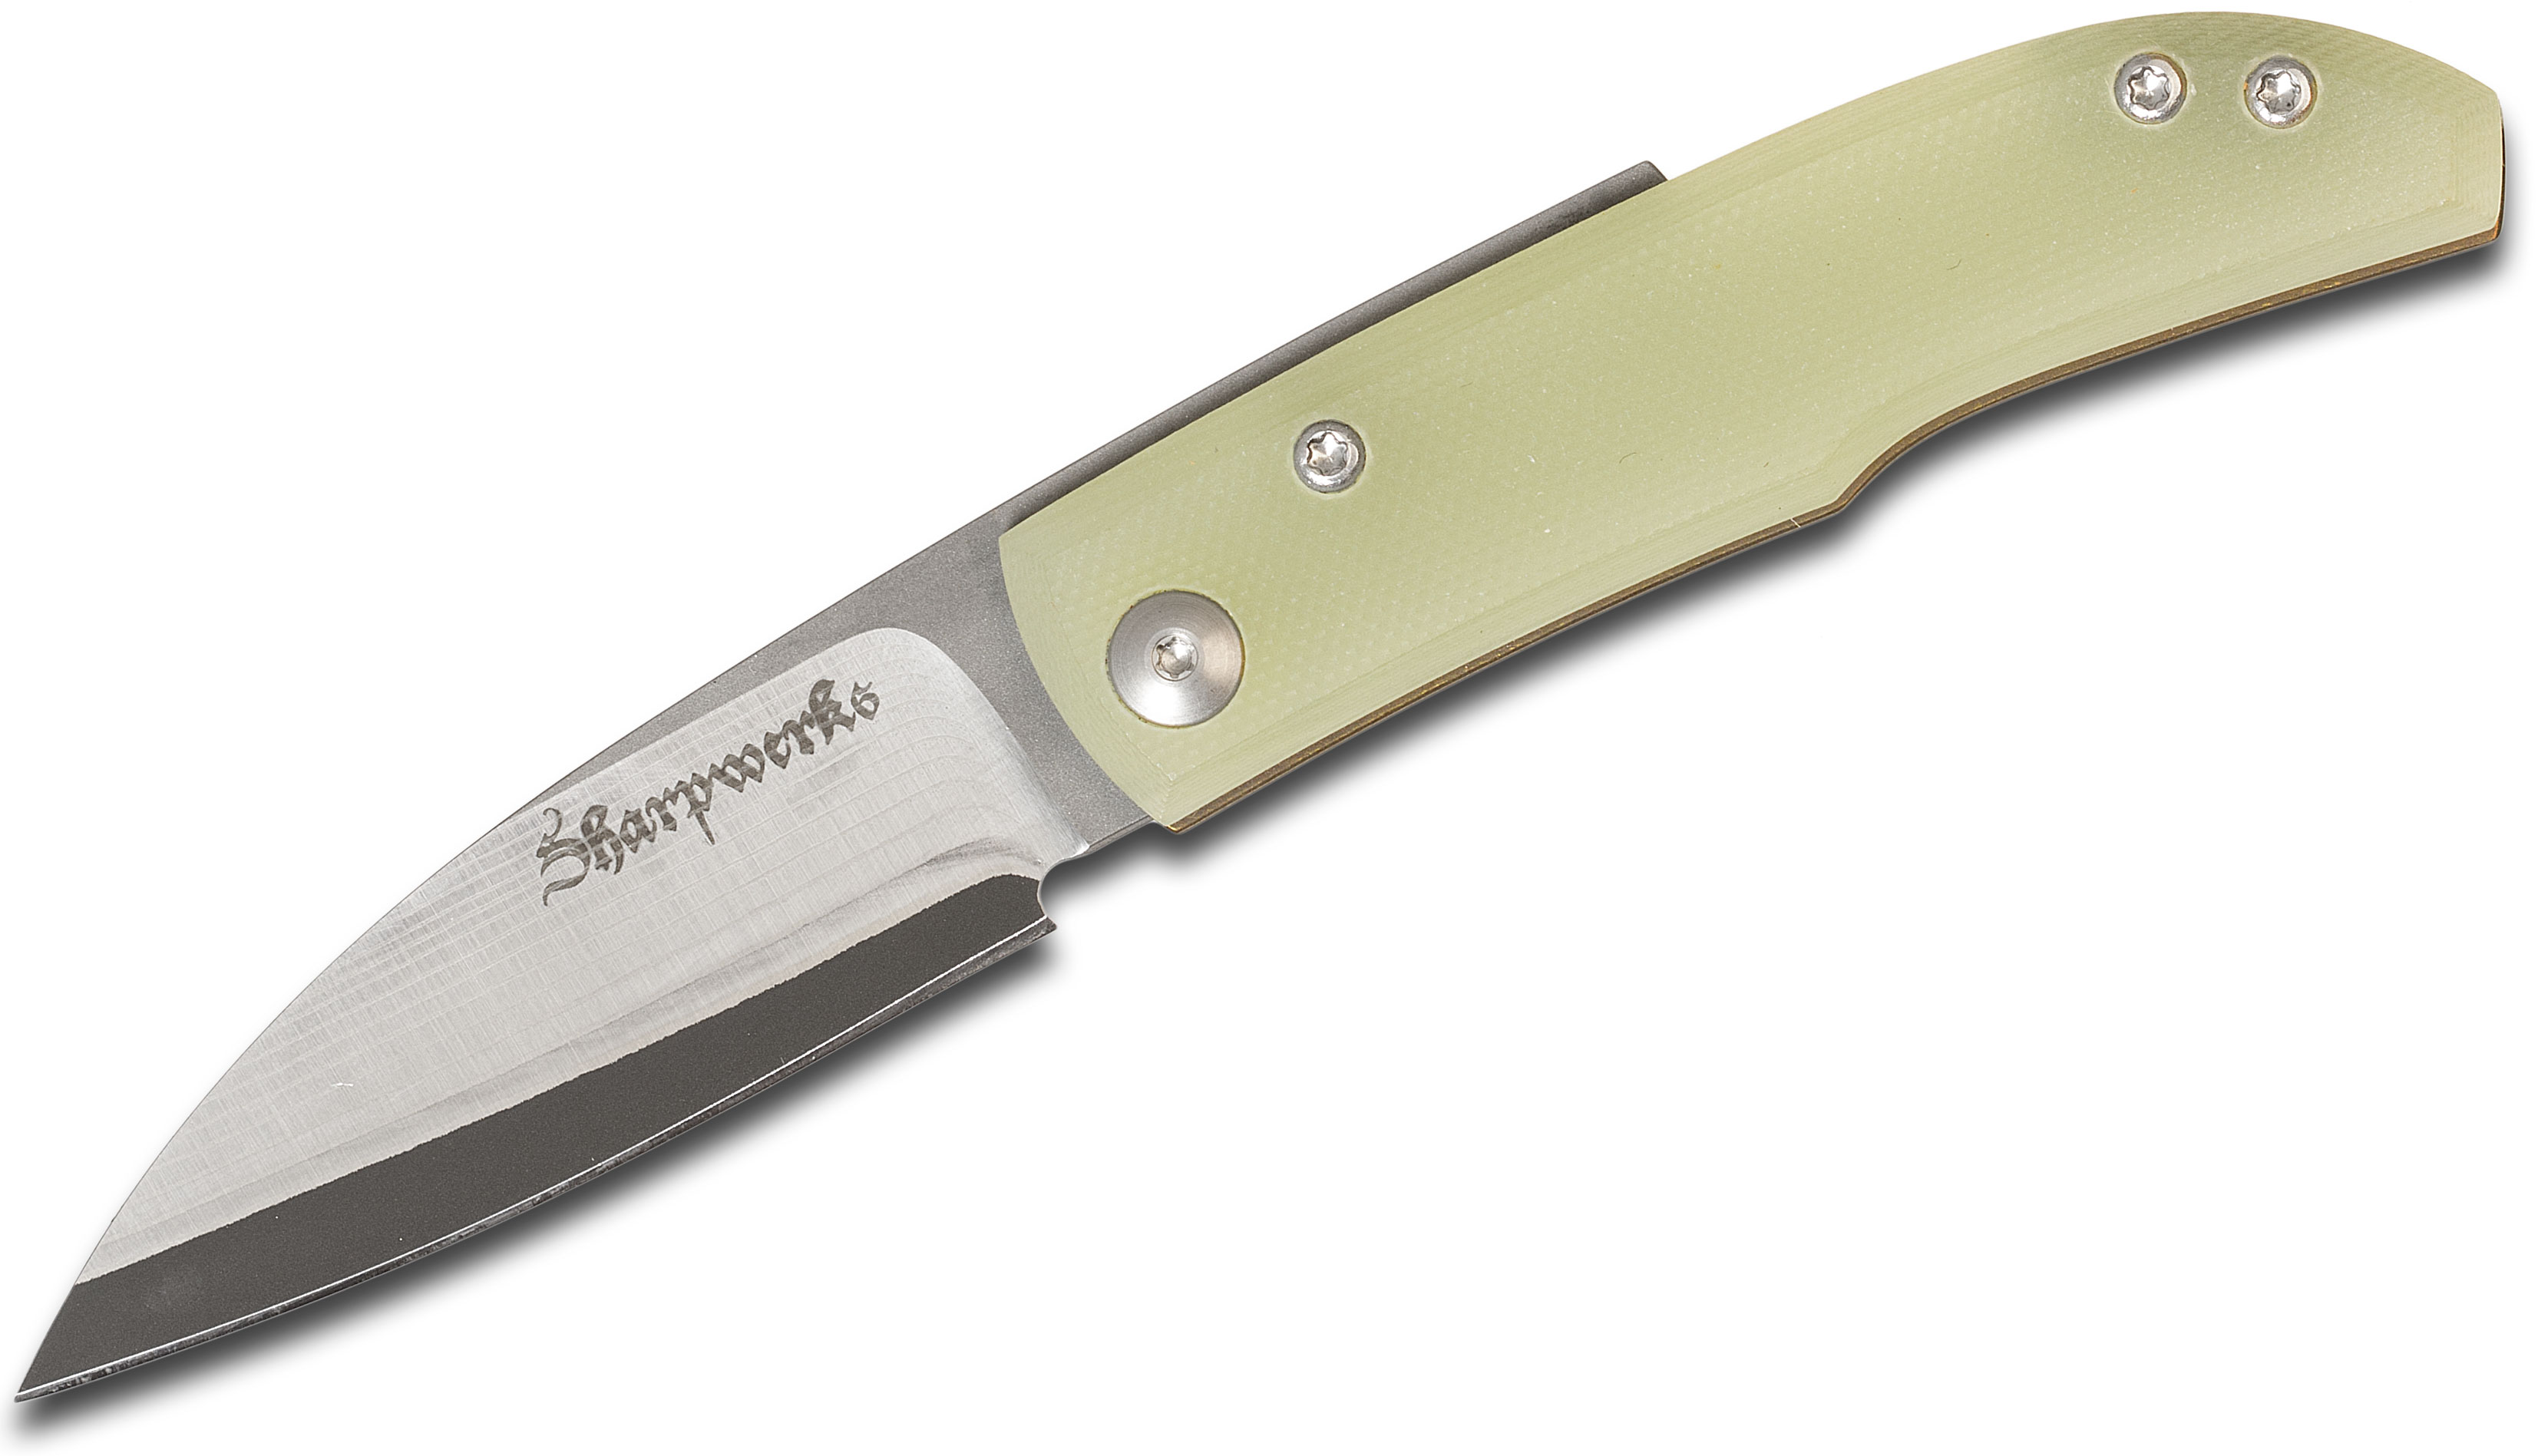 Sharpwerks Custom Friction Folder 2.75 inch 300 Stainless With A VG10 Core  Wharncliffe Blade,Translucent Green G10/Titanium Handles, Leather Sheath